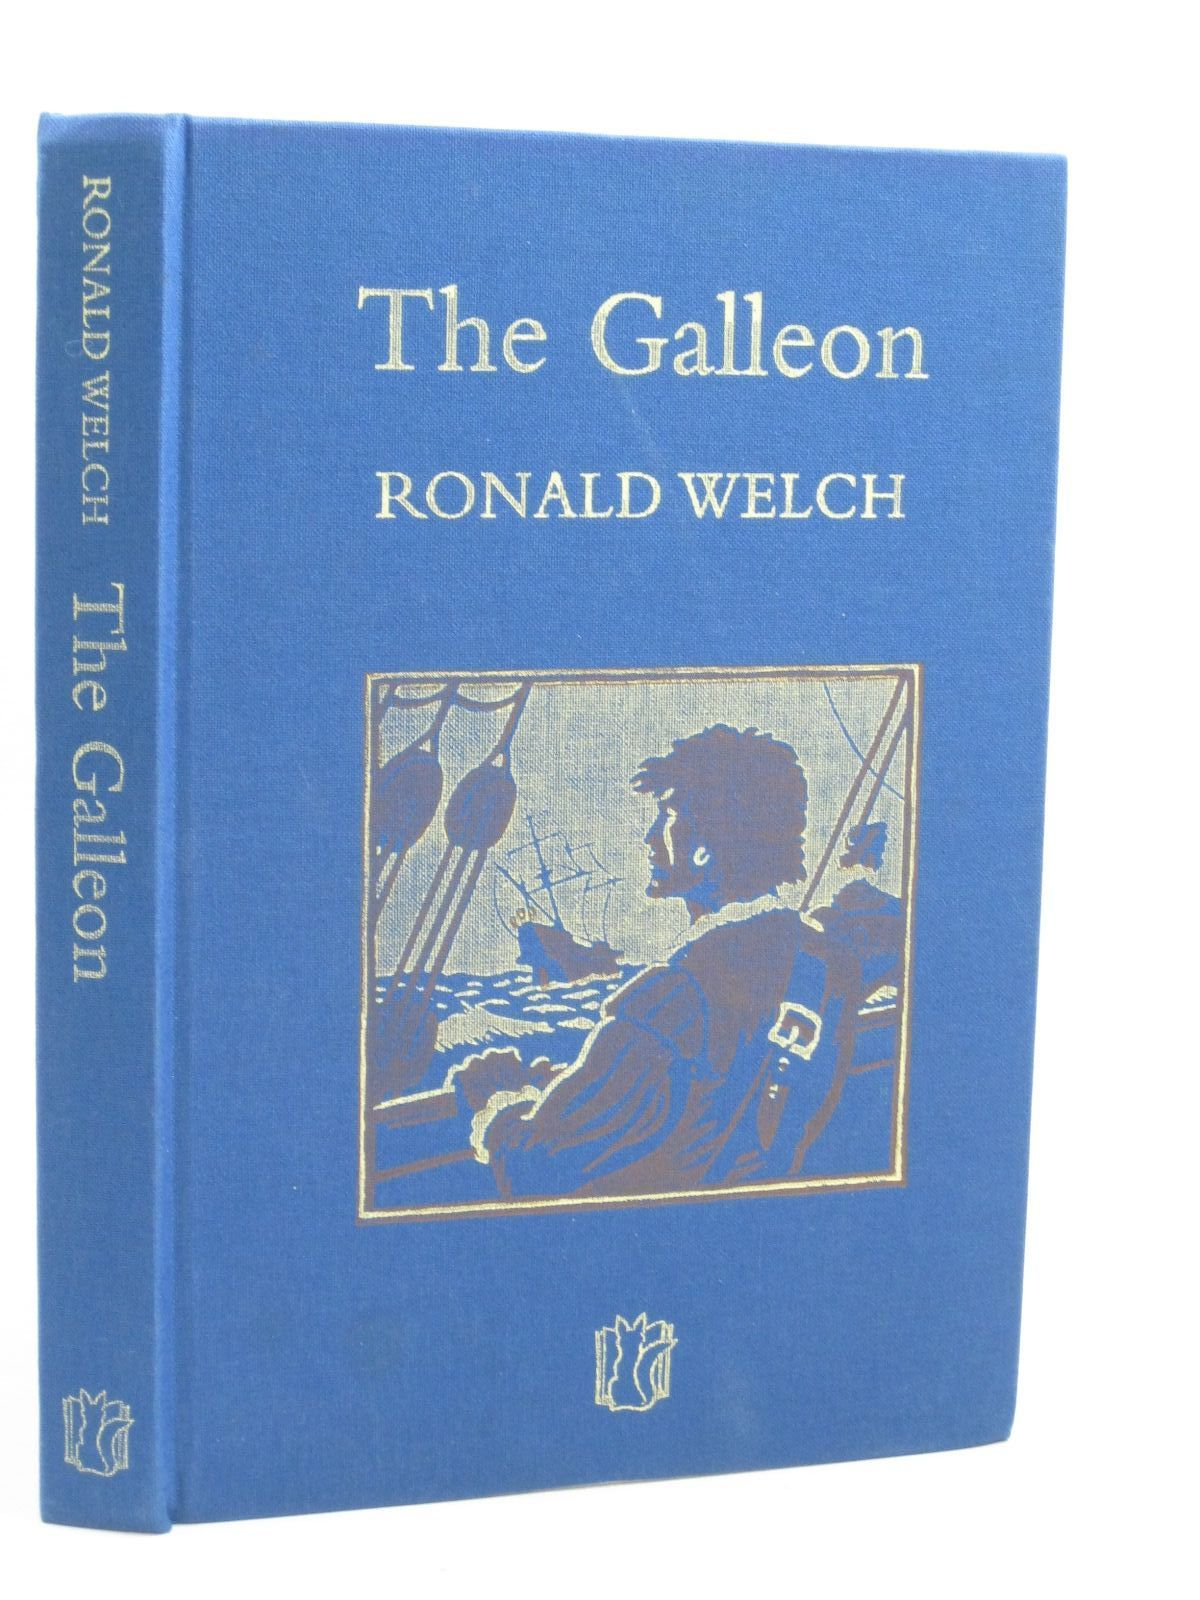 Photo of THE GALLEON written by Welch, Ronald illustrated by Ambrus, Victor published by Slightly Foxed Ltd. (STOCK CODE: 1405638)  for sale by Stella & Rose's Books